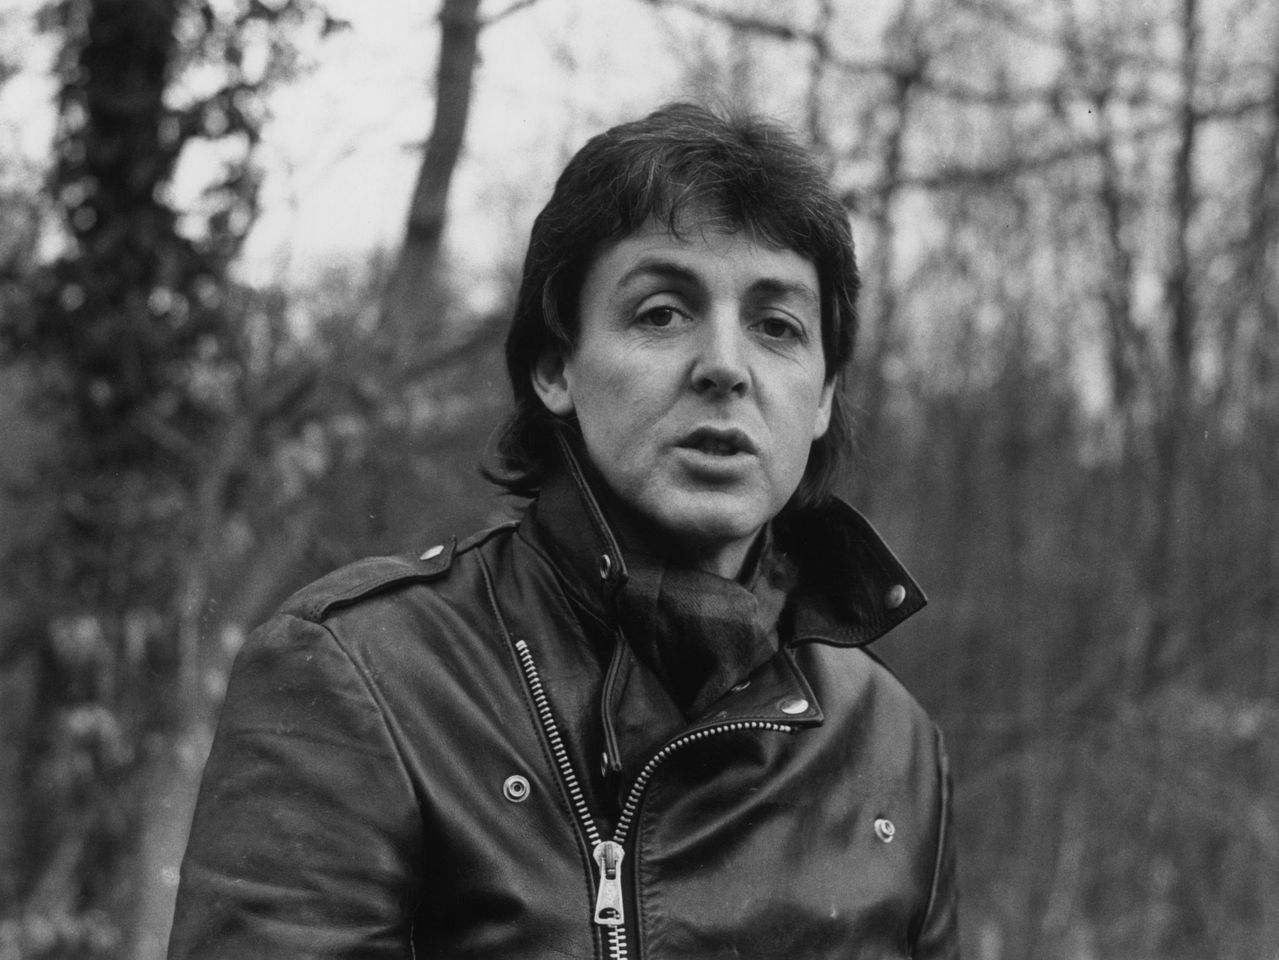 Paul McCartney on his farm near Rye, Sussex, January 28, 1980. | Source: Getty Images